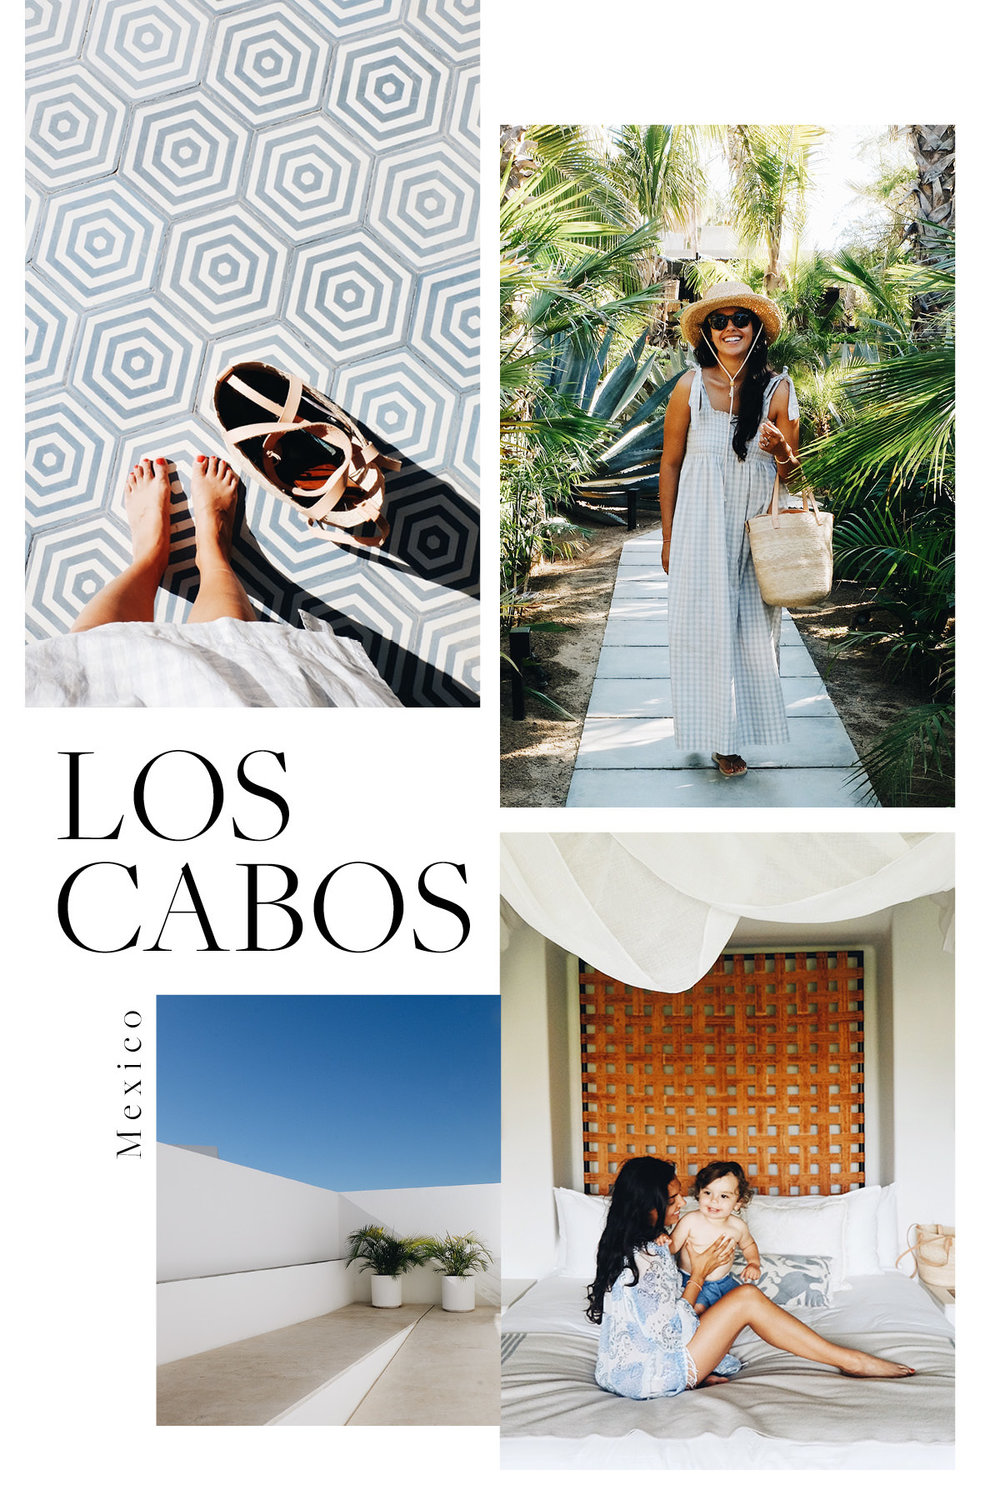 The Far & Near, Travel Guide to Los Cabos by Dulci Edge